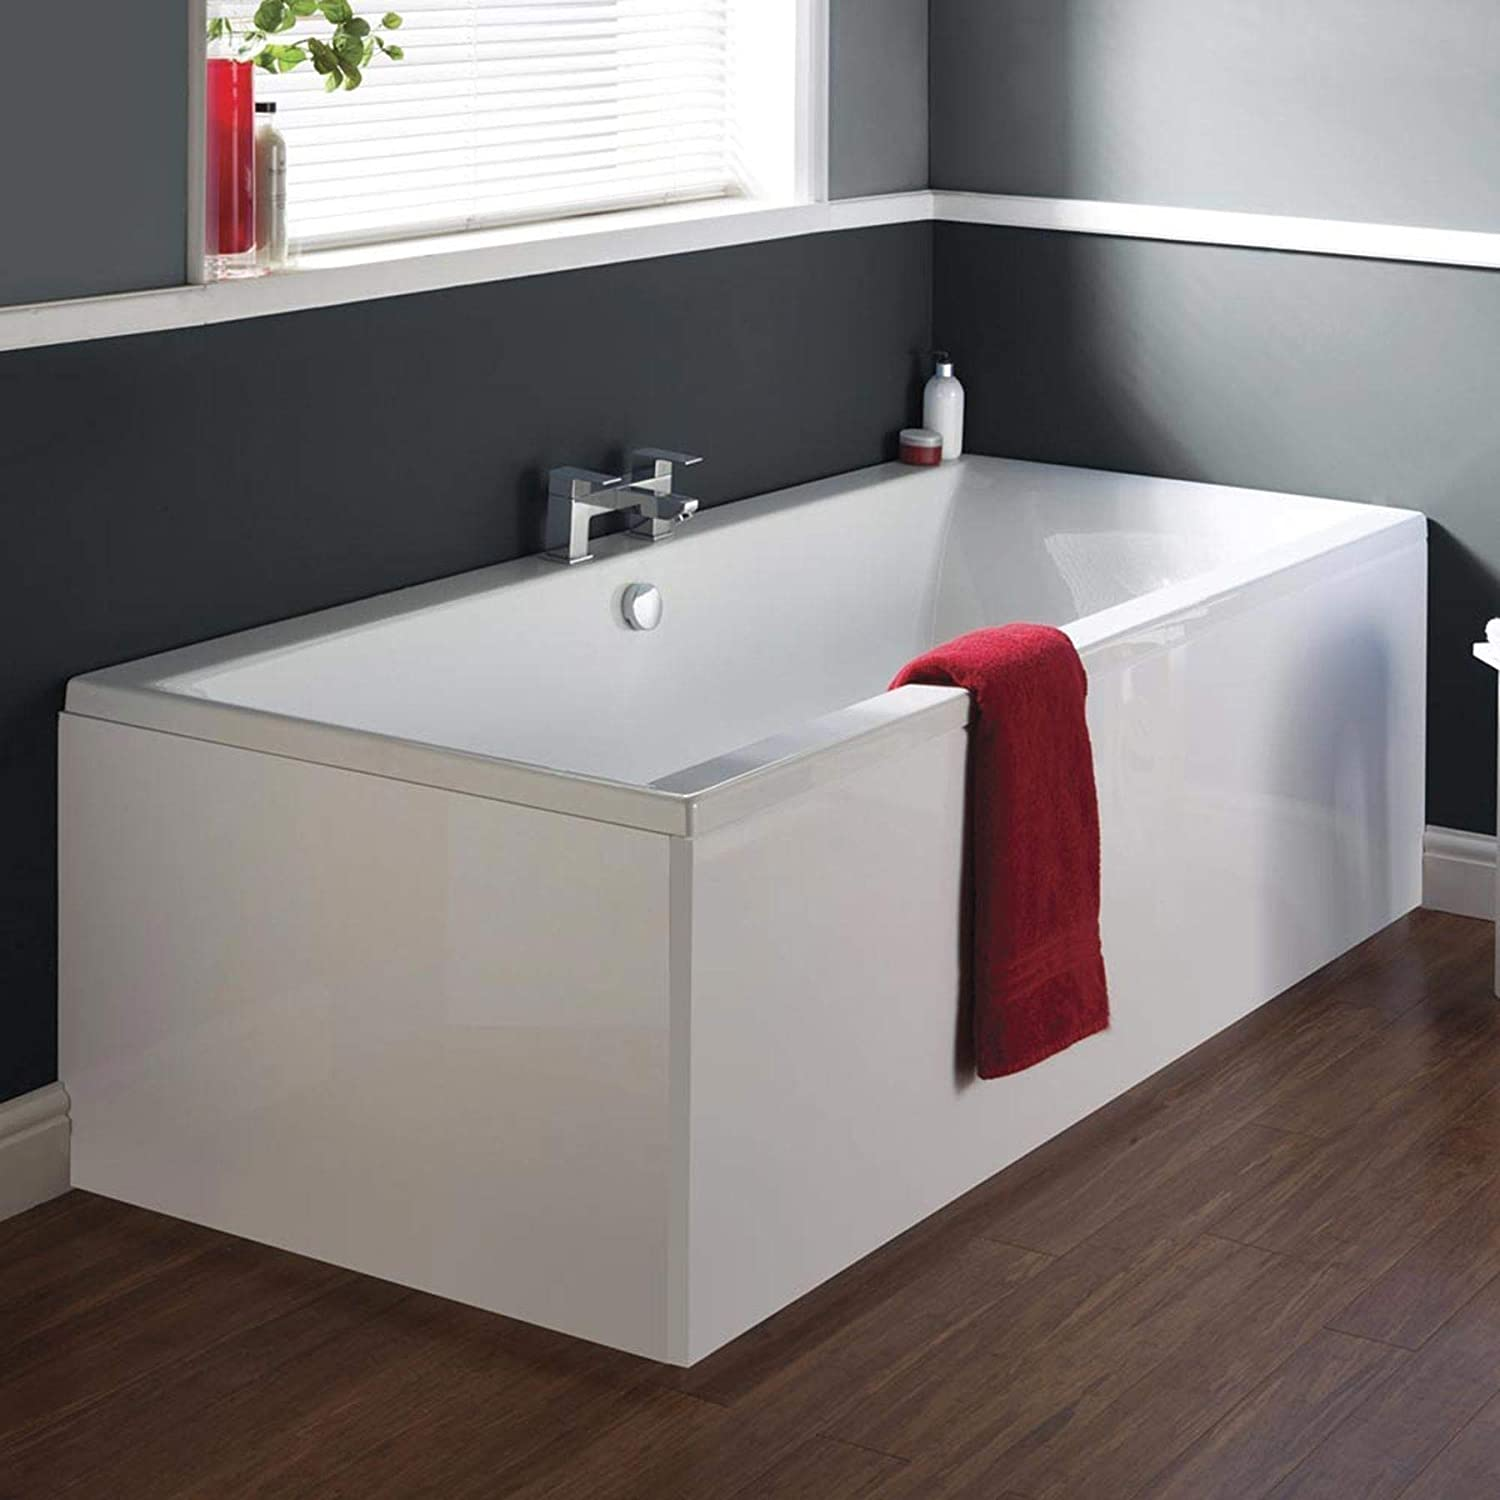 425mm Deep Premier Asselby 1700 x 750 Double Ended Straight White Rectangular Lucite Acrylic Bathtub